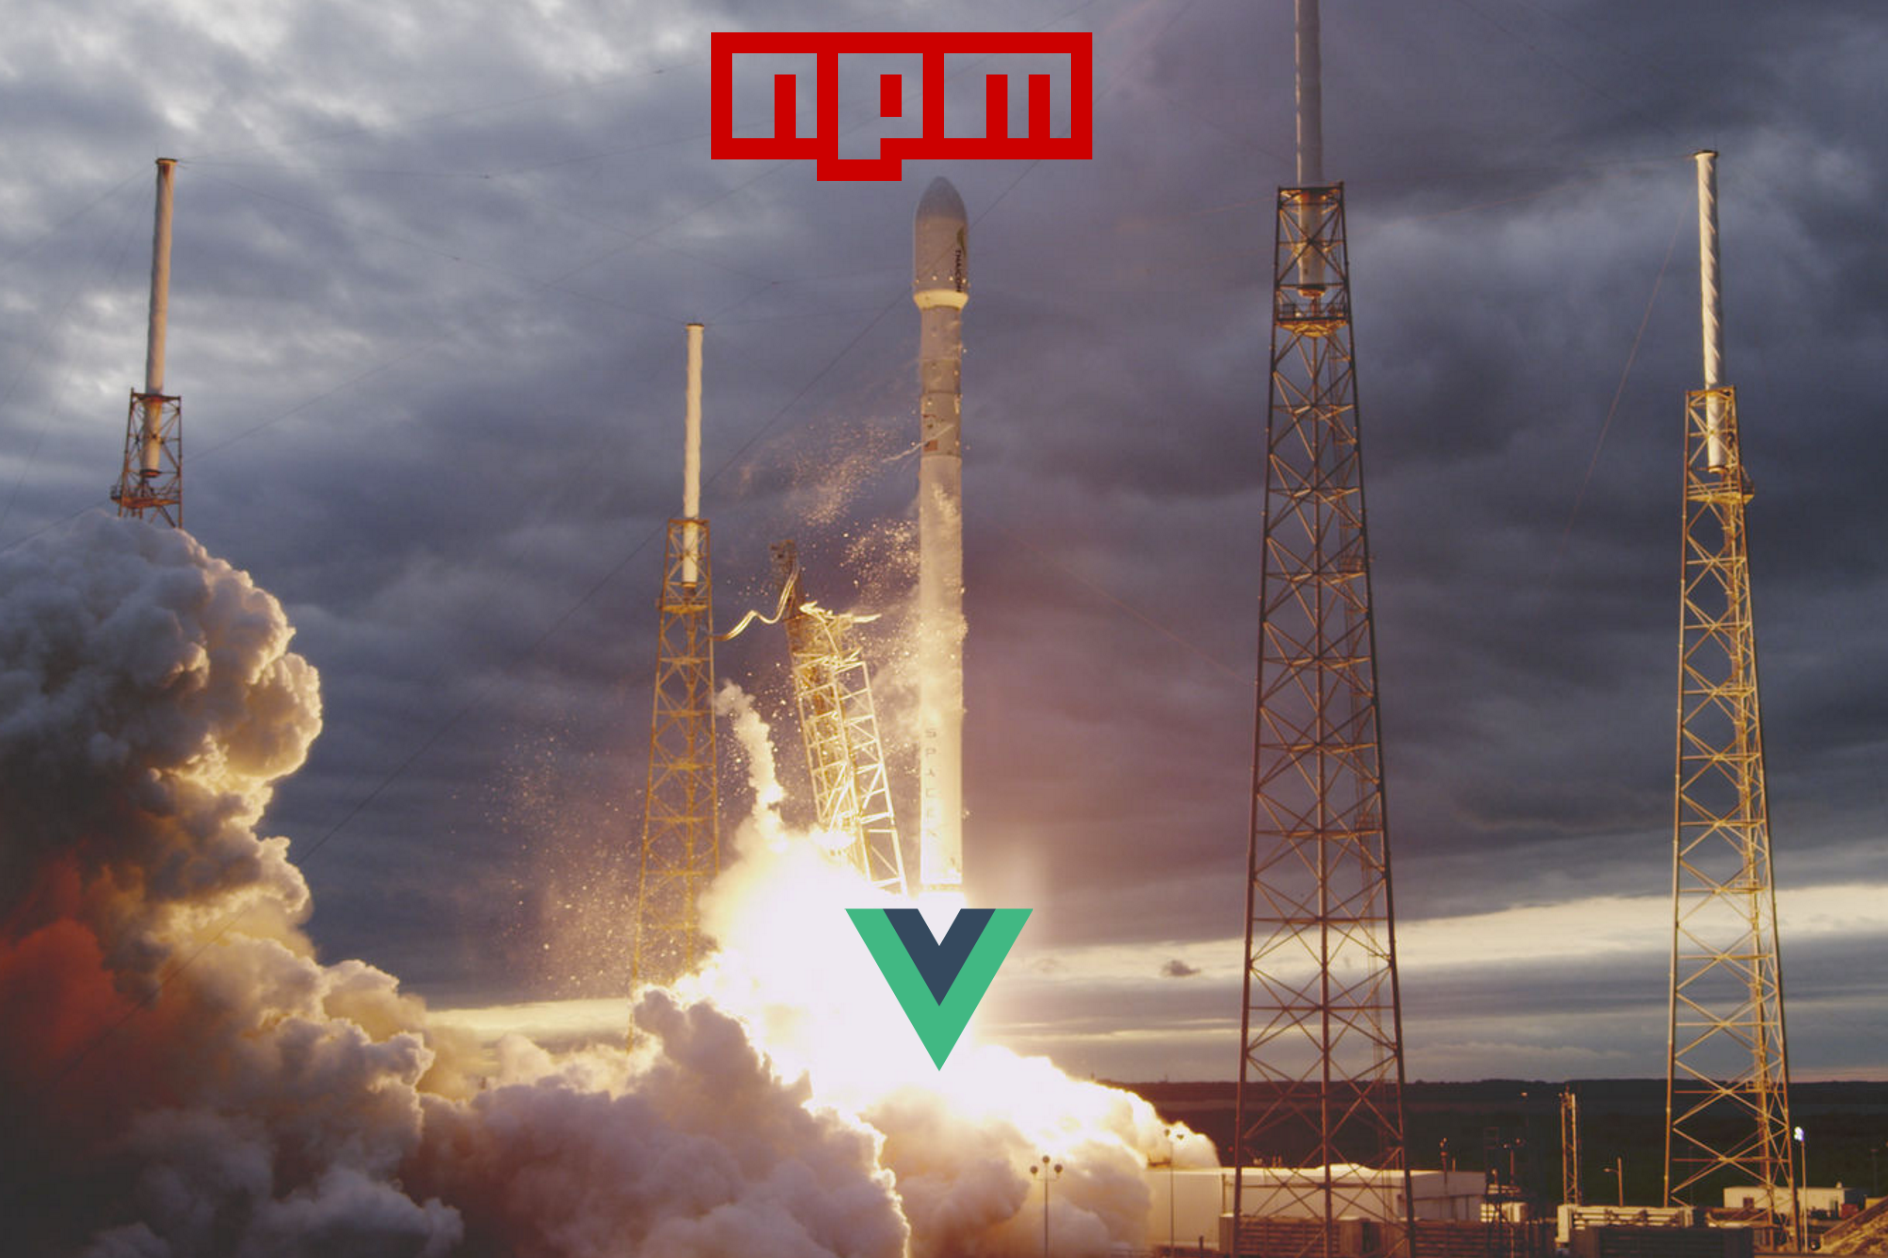 Fastest way to publish a Vue js component on NPM - codeburst